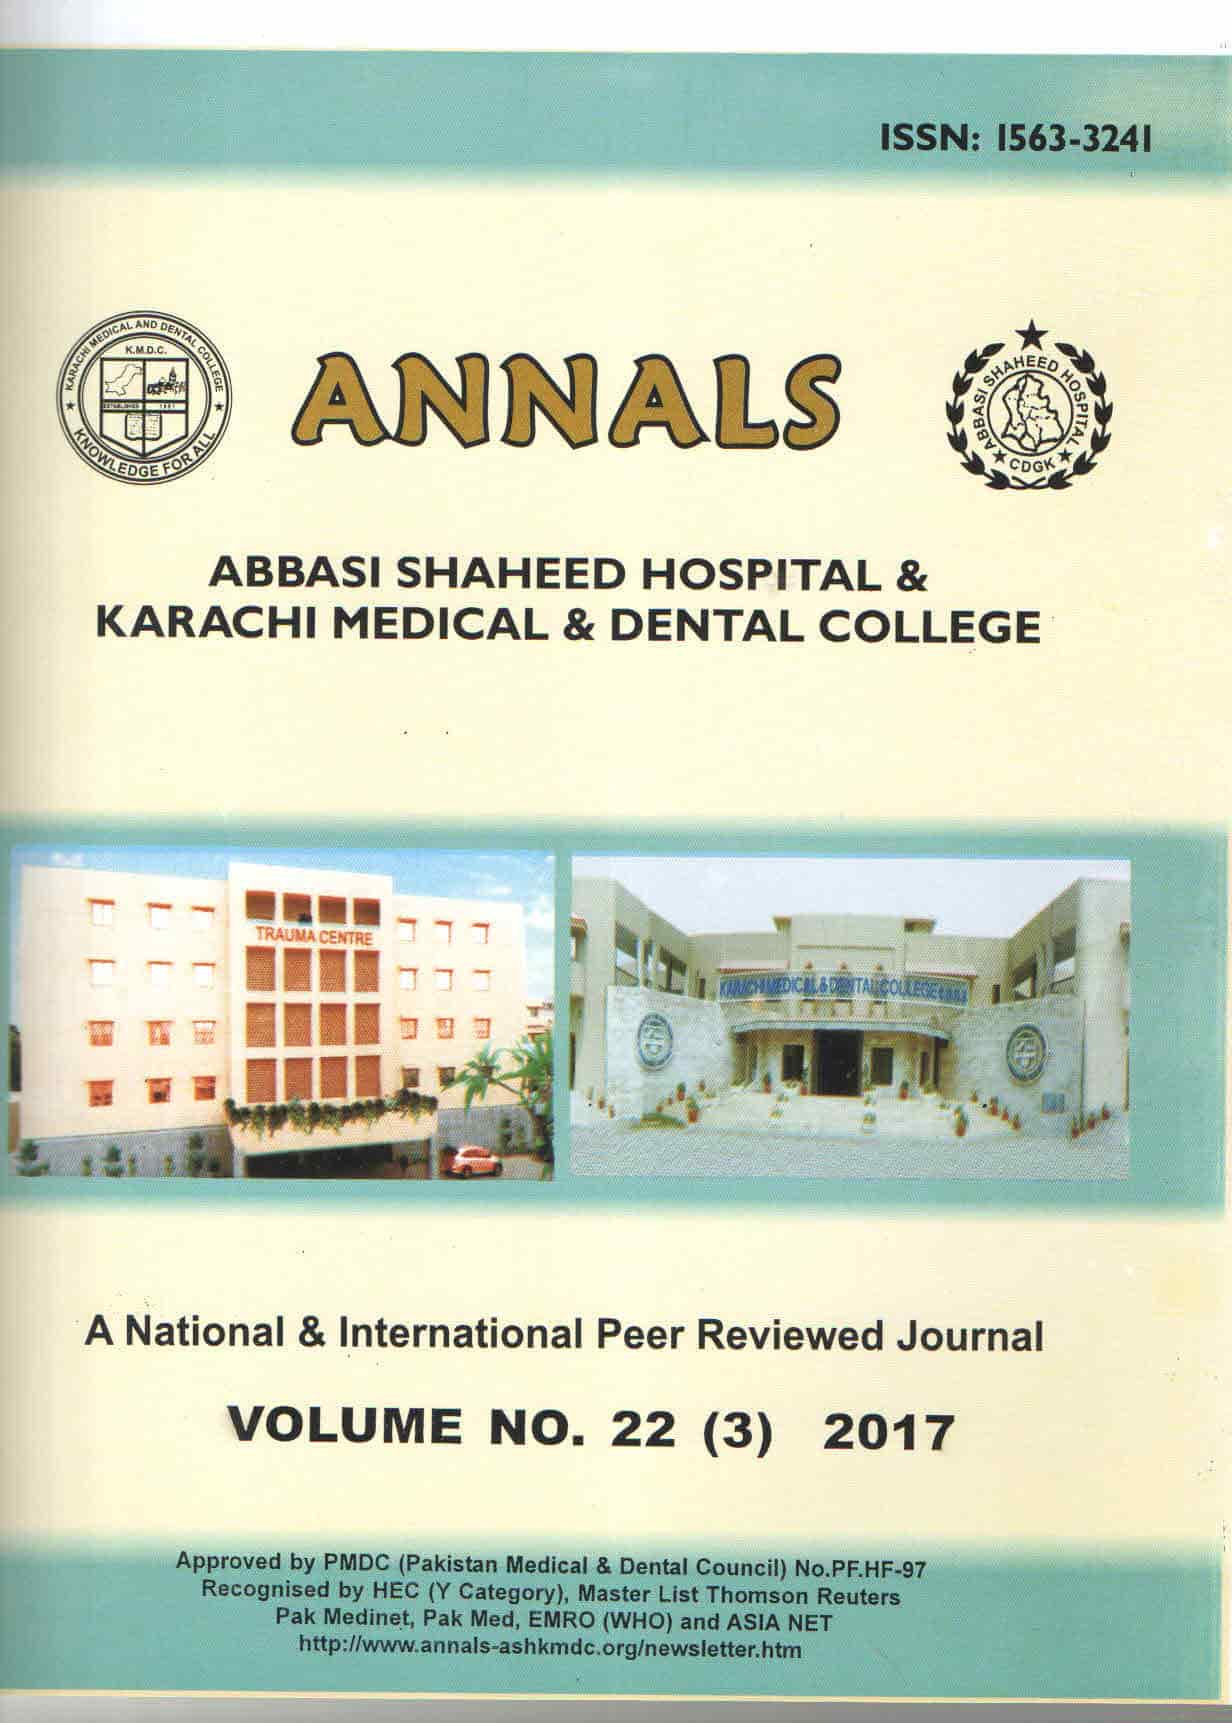 Annals of Abbasi Shaheed Hospital and Karachi Medical and